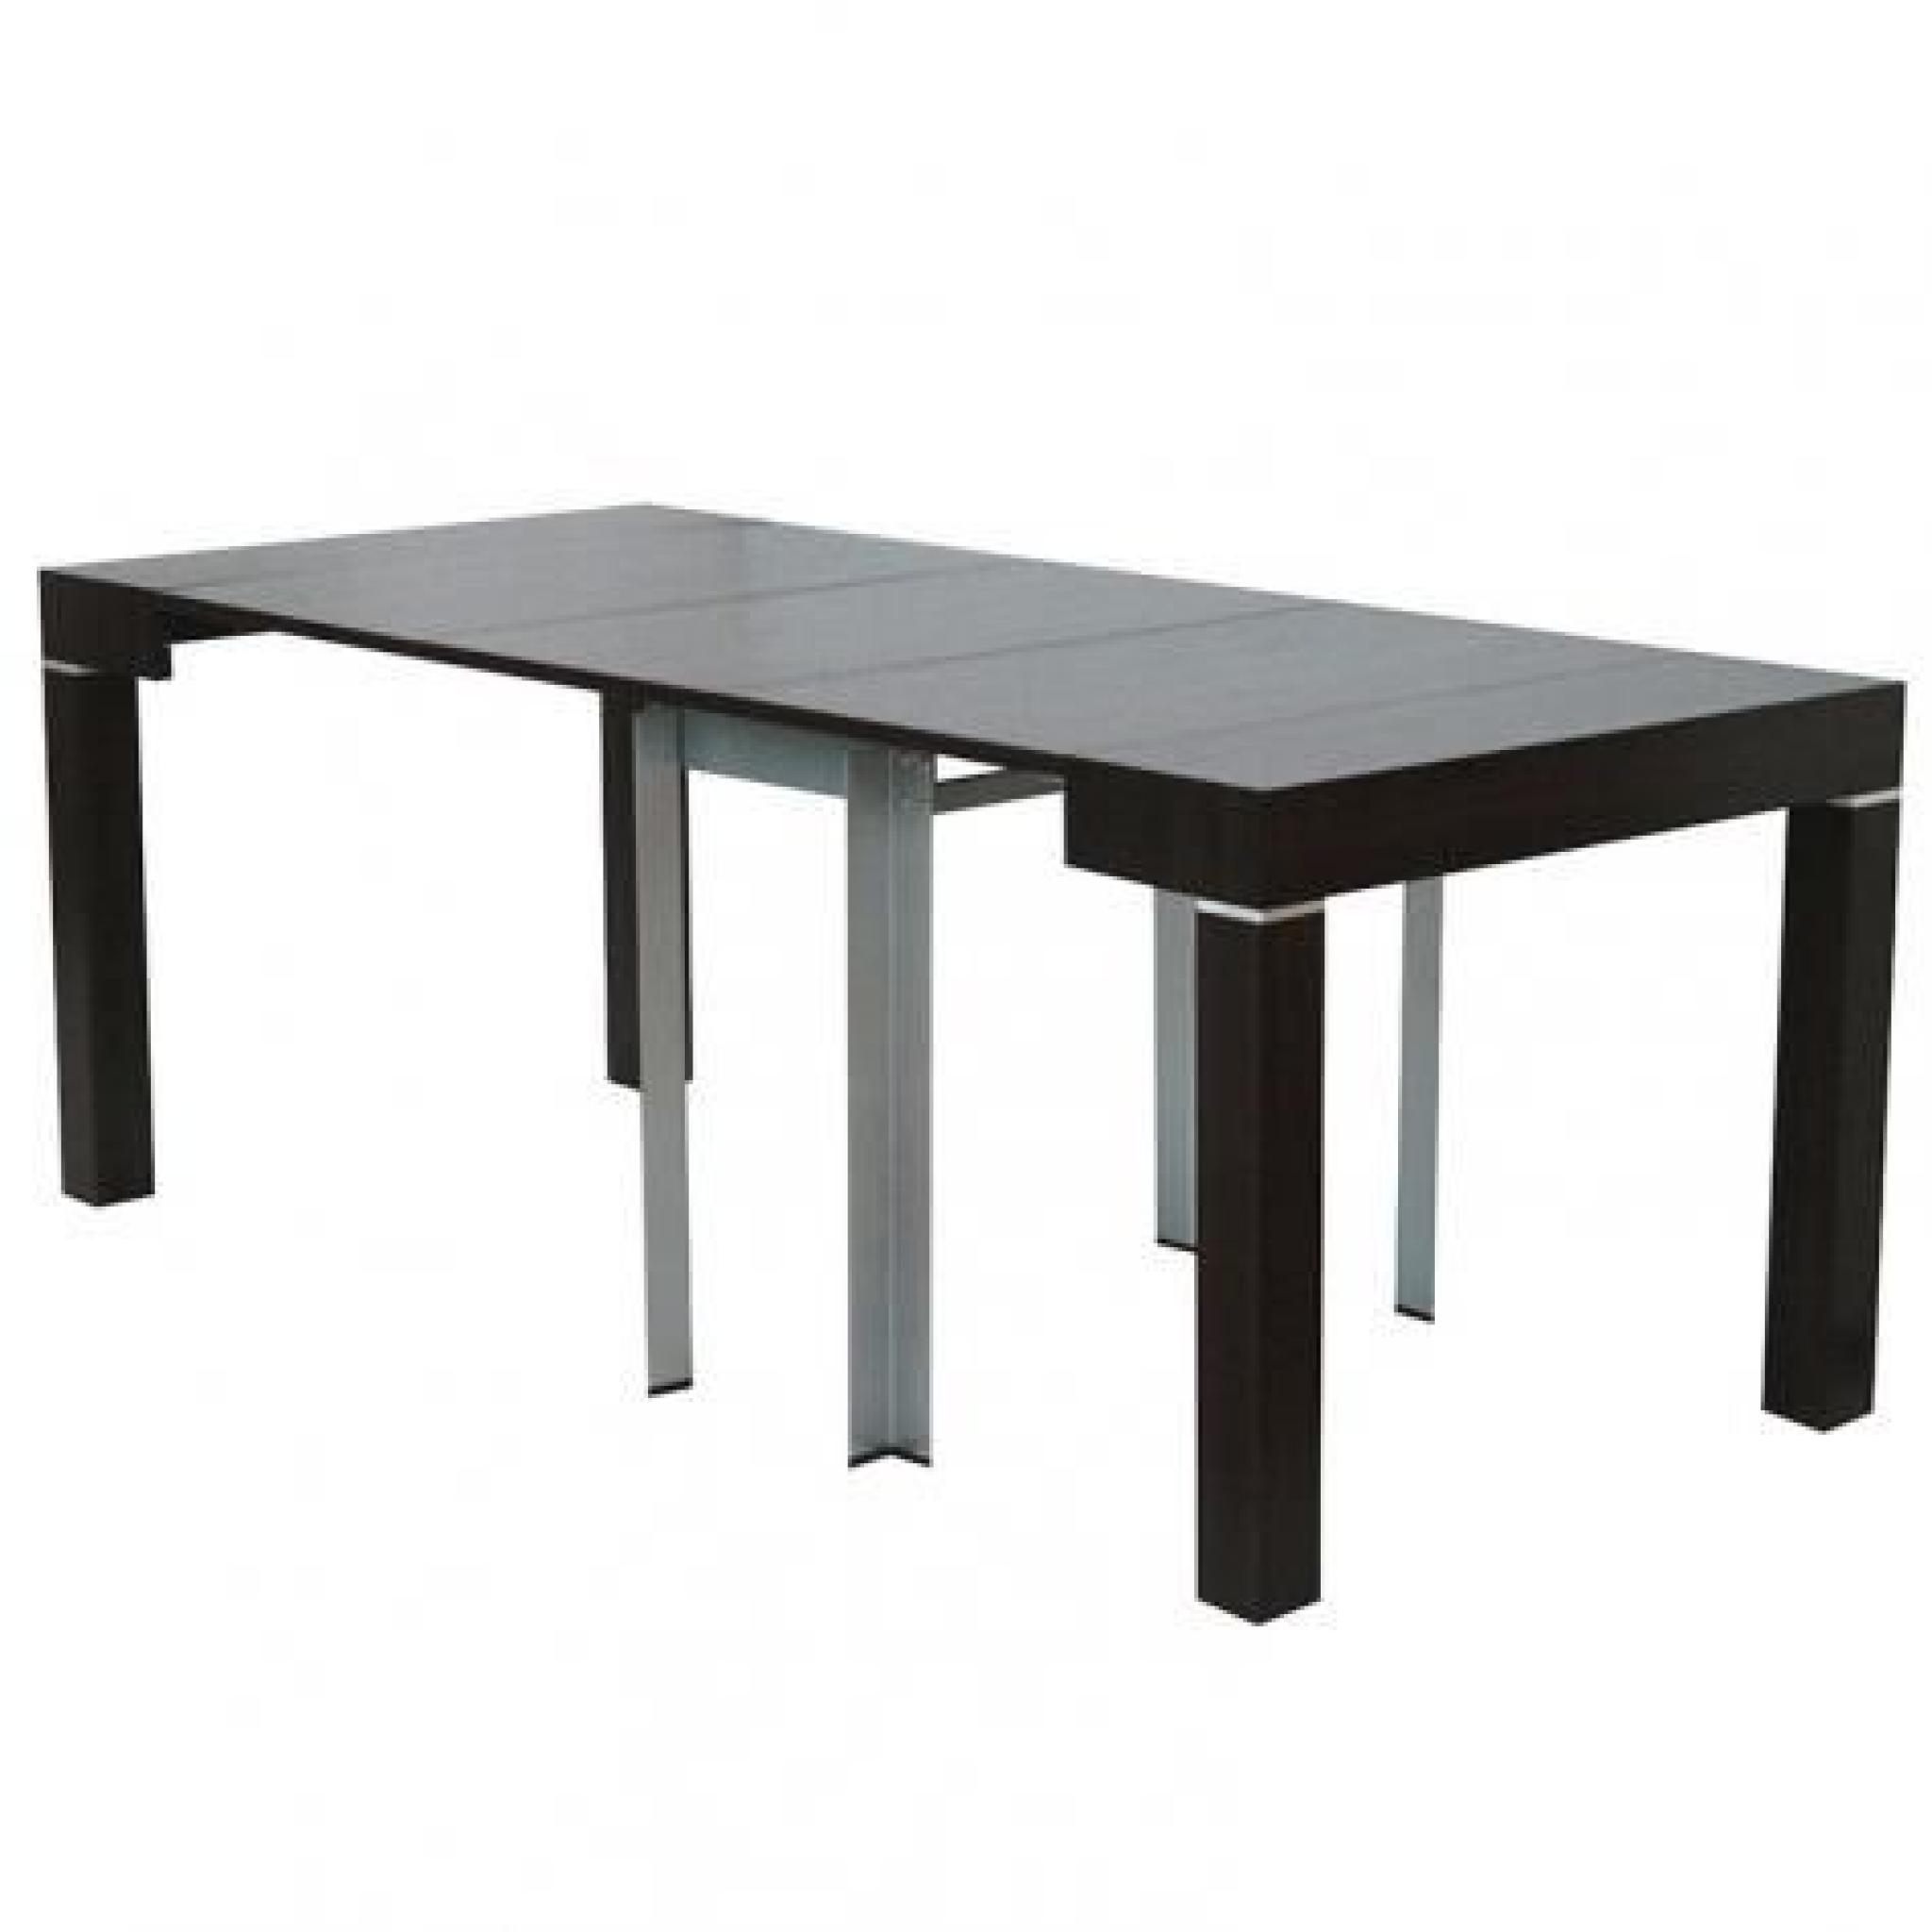 Table rallonge pas cher maison design for Table pas cher